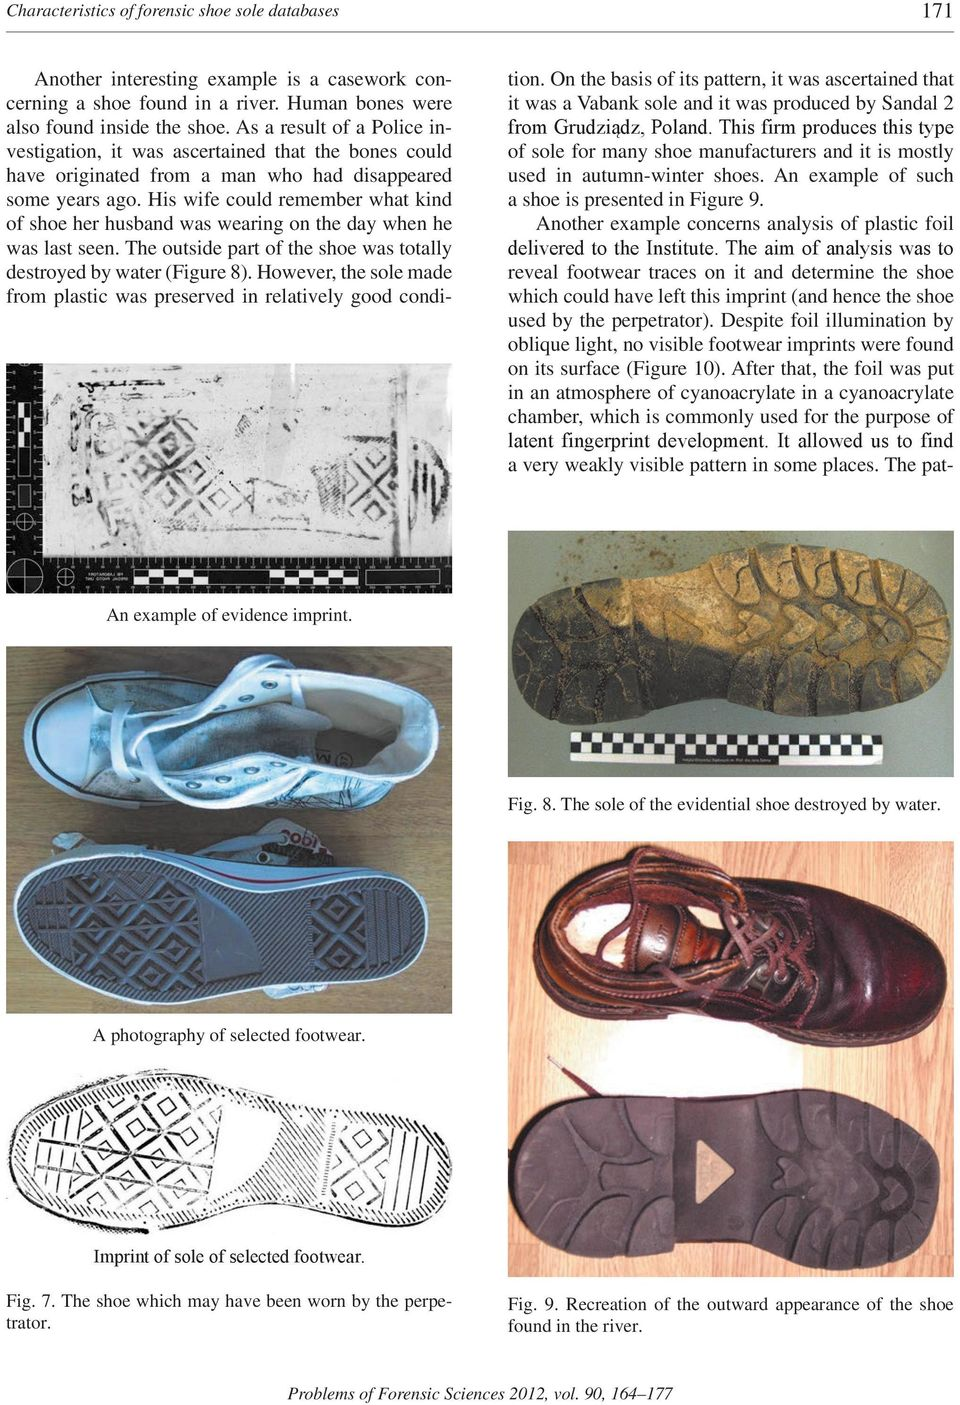 His wife could remember what kind of shoe her husband was wearing on the day when he was last seen. The outside part of the shoe was totally destroyed by water (Figure 8).